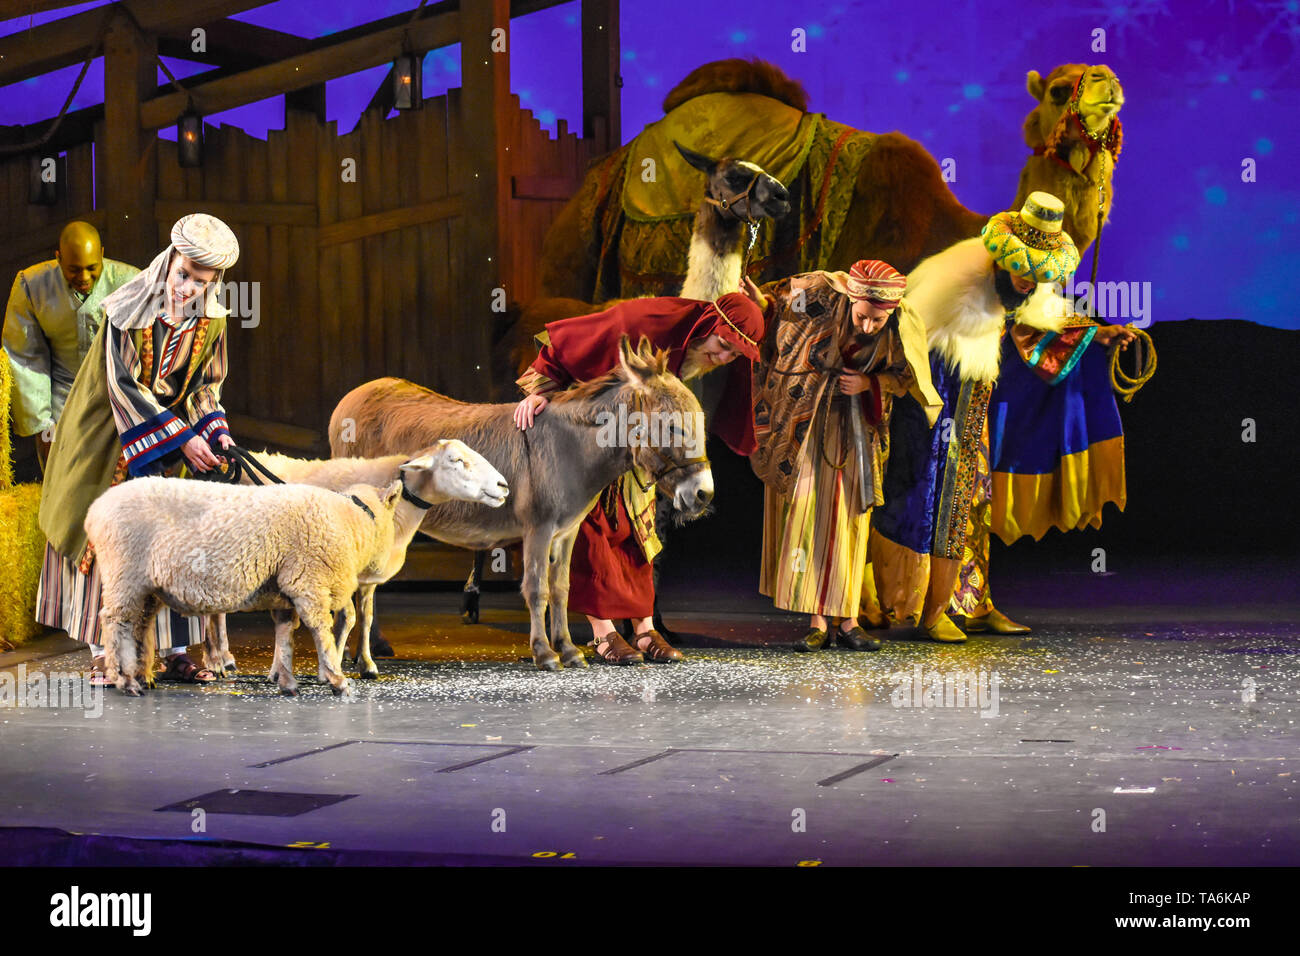 Orlando, Florida. December 19, 2018. Christmas Celebration with real animals at Seaworld in International Drive area (2) - Stock Image